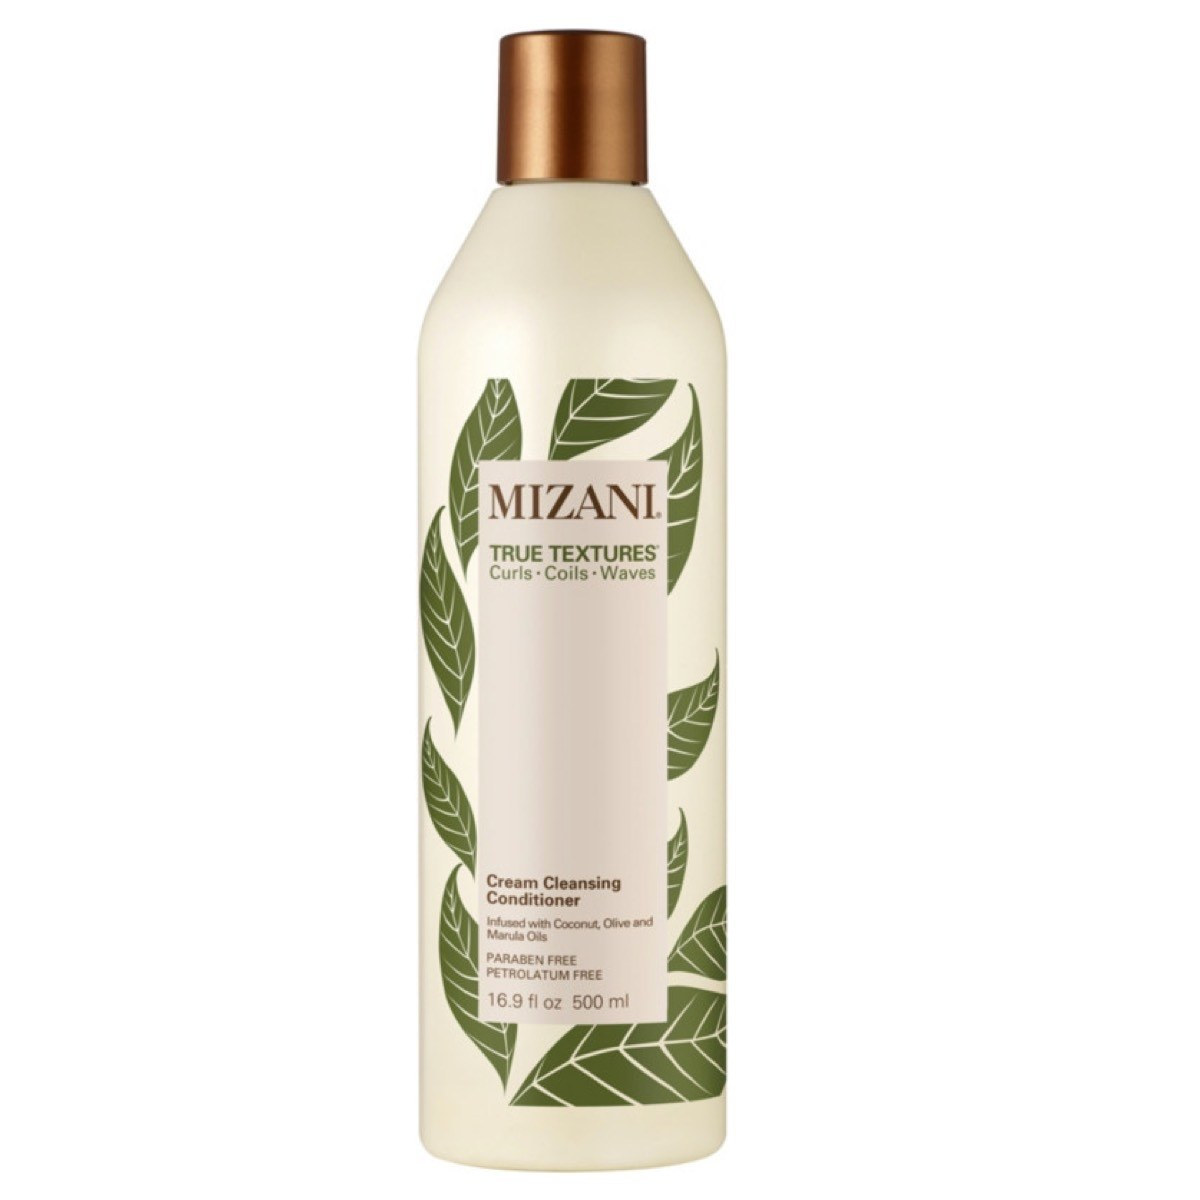 Mizani True Textures Cream Cleansing Conditioner